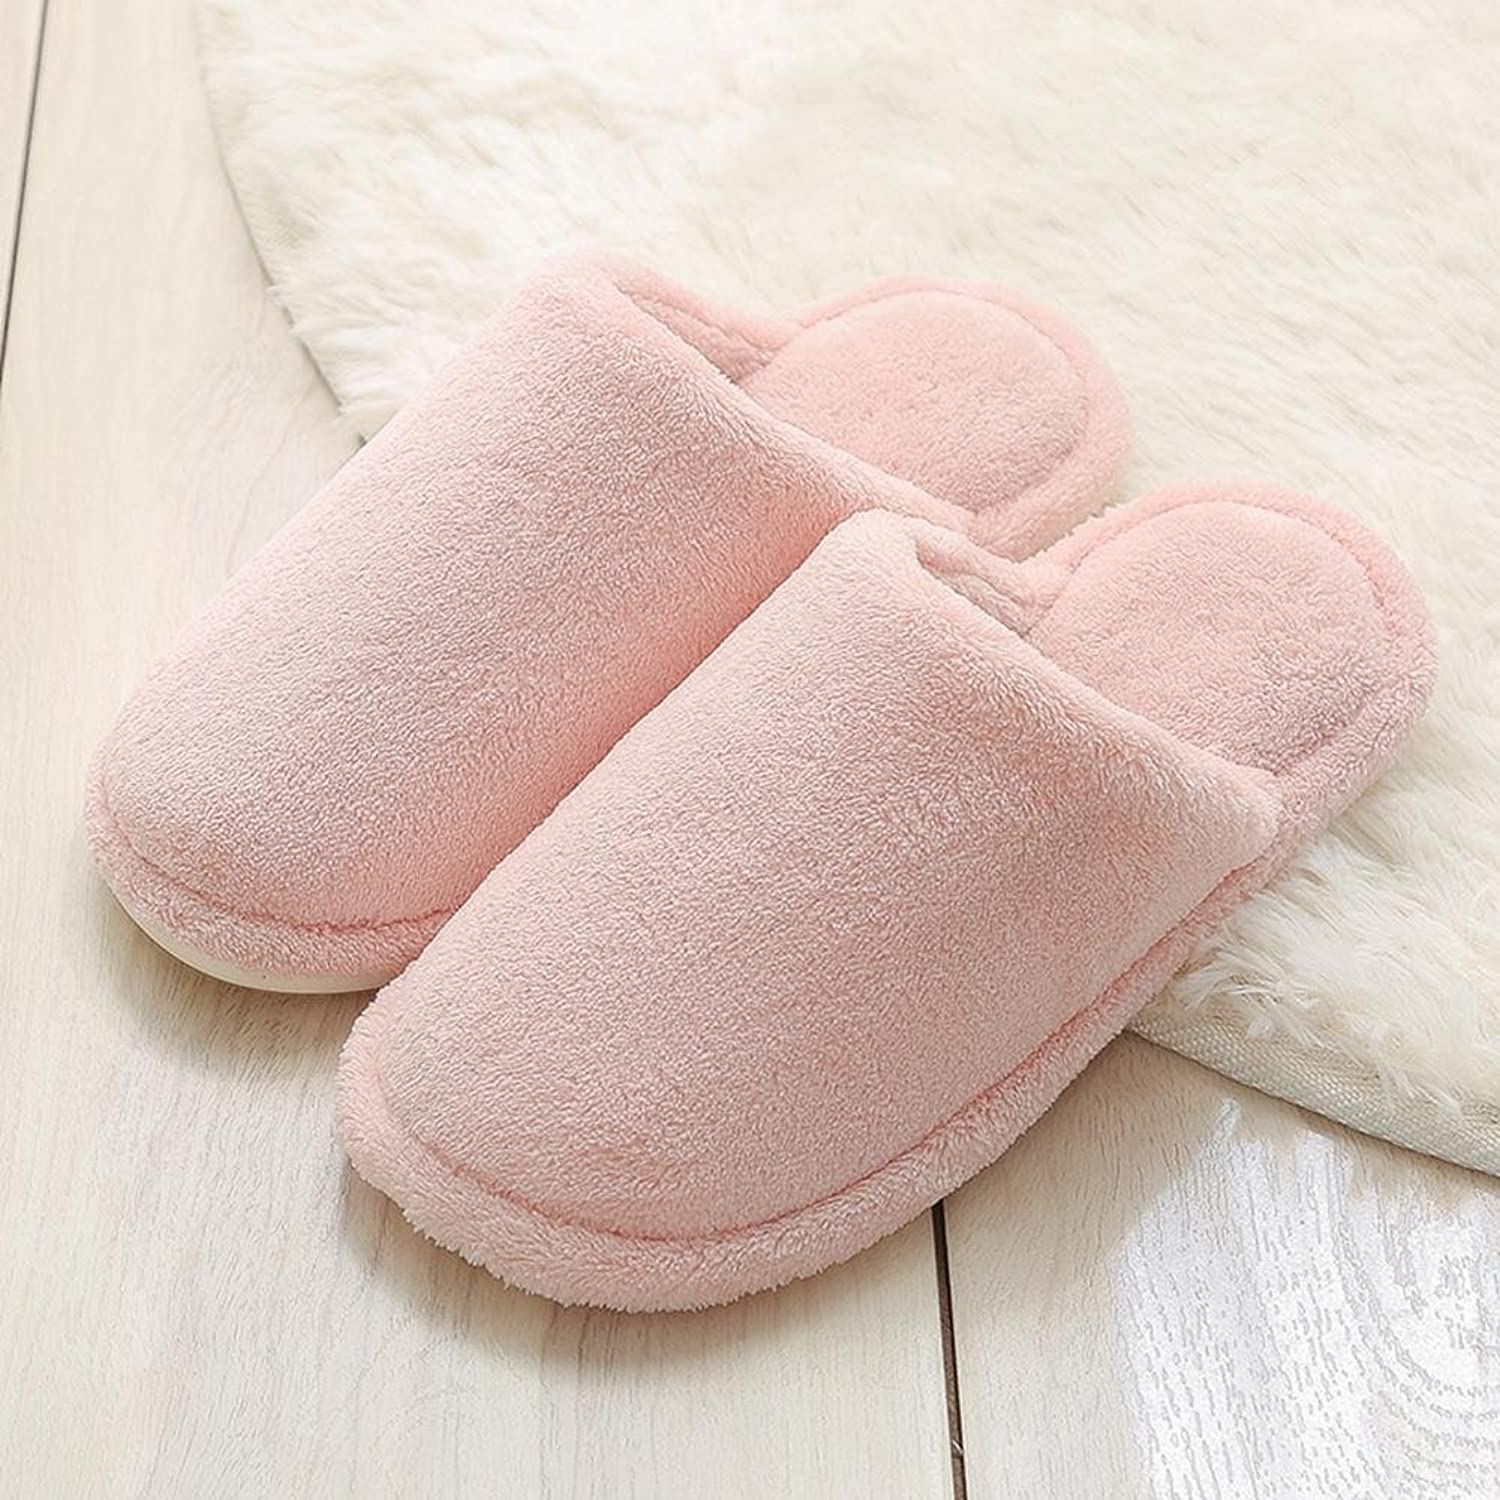 Women's shoes Fall Winter Comfort Slippers Flat Heel Round Toe for Casual